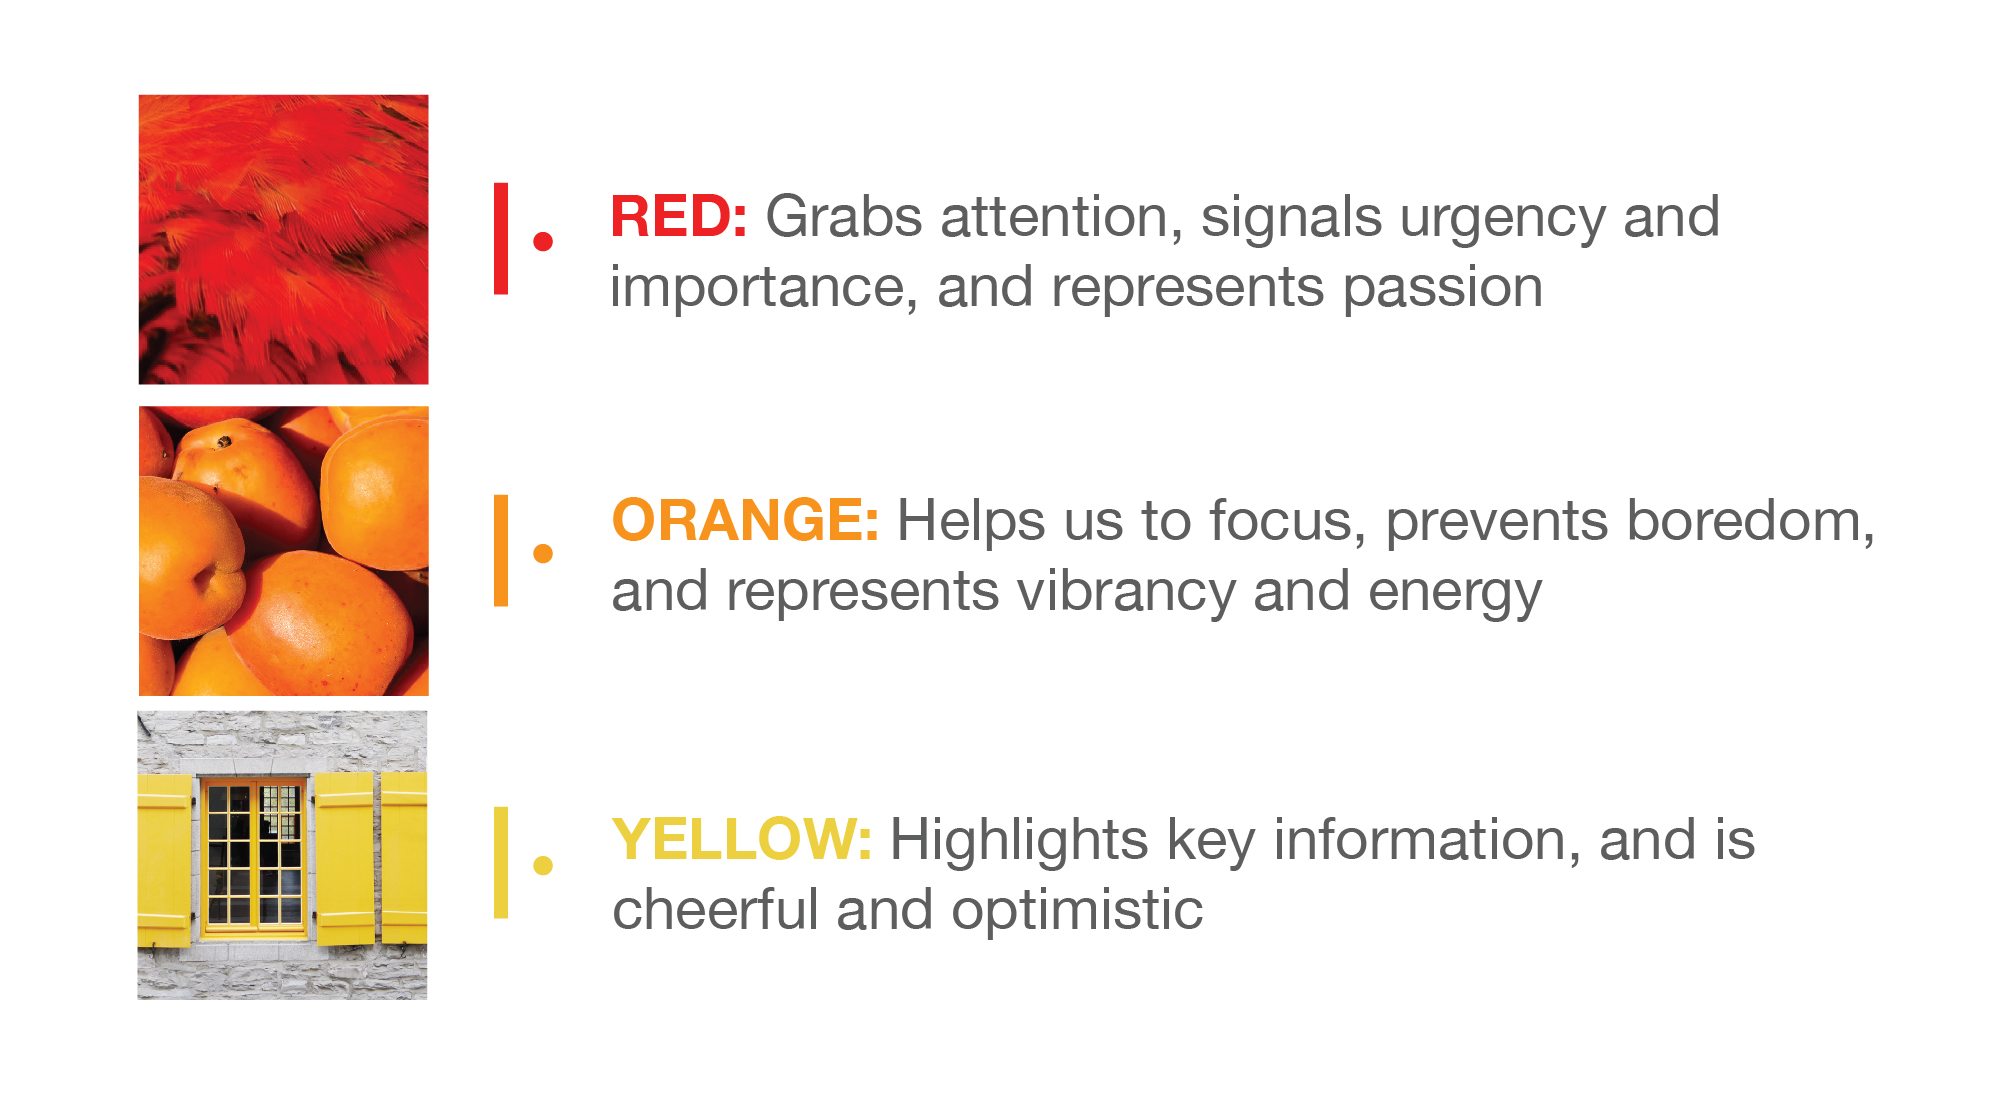 image describing the psychology of colour with reference to warm colour tiles in red, orange and yellow